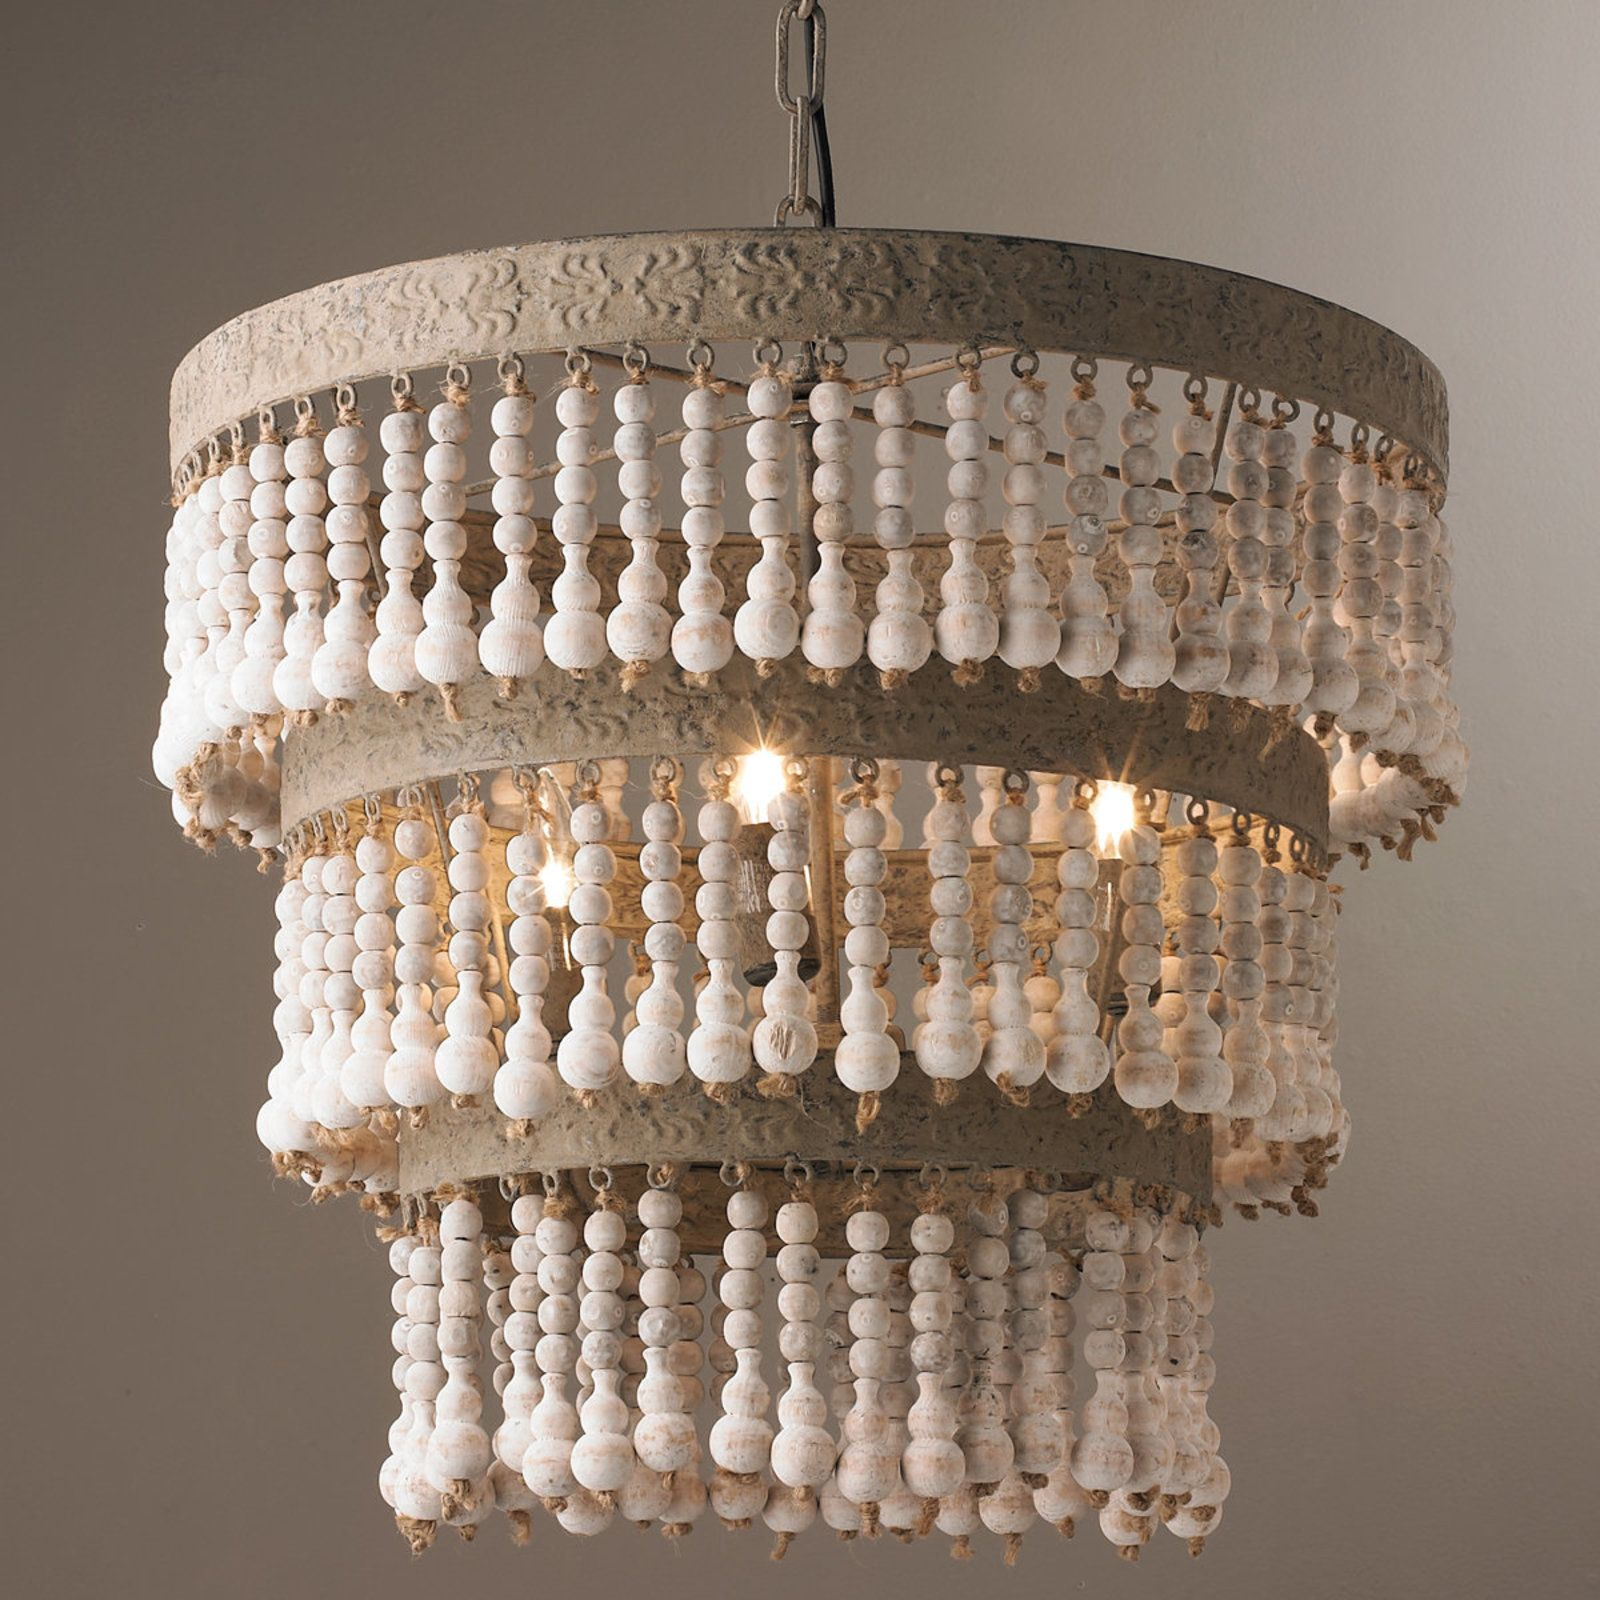 385 Three Tiered Wood Beaded Chandelier Antique White